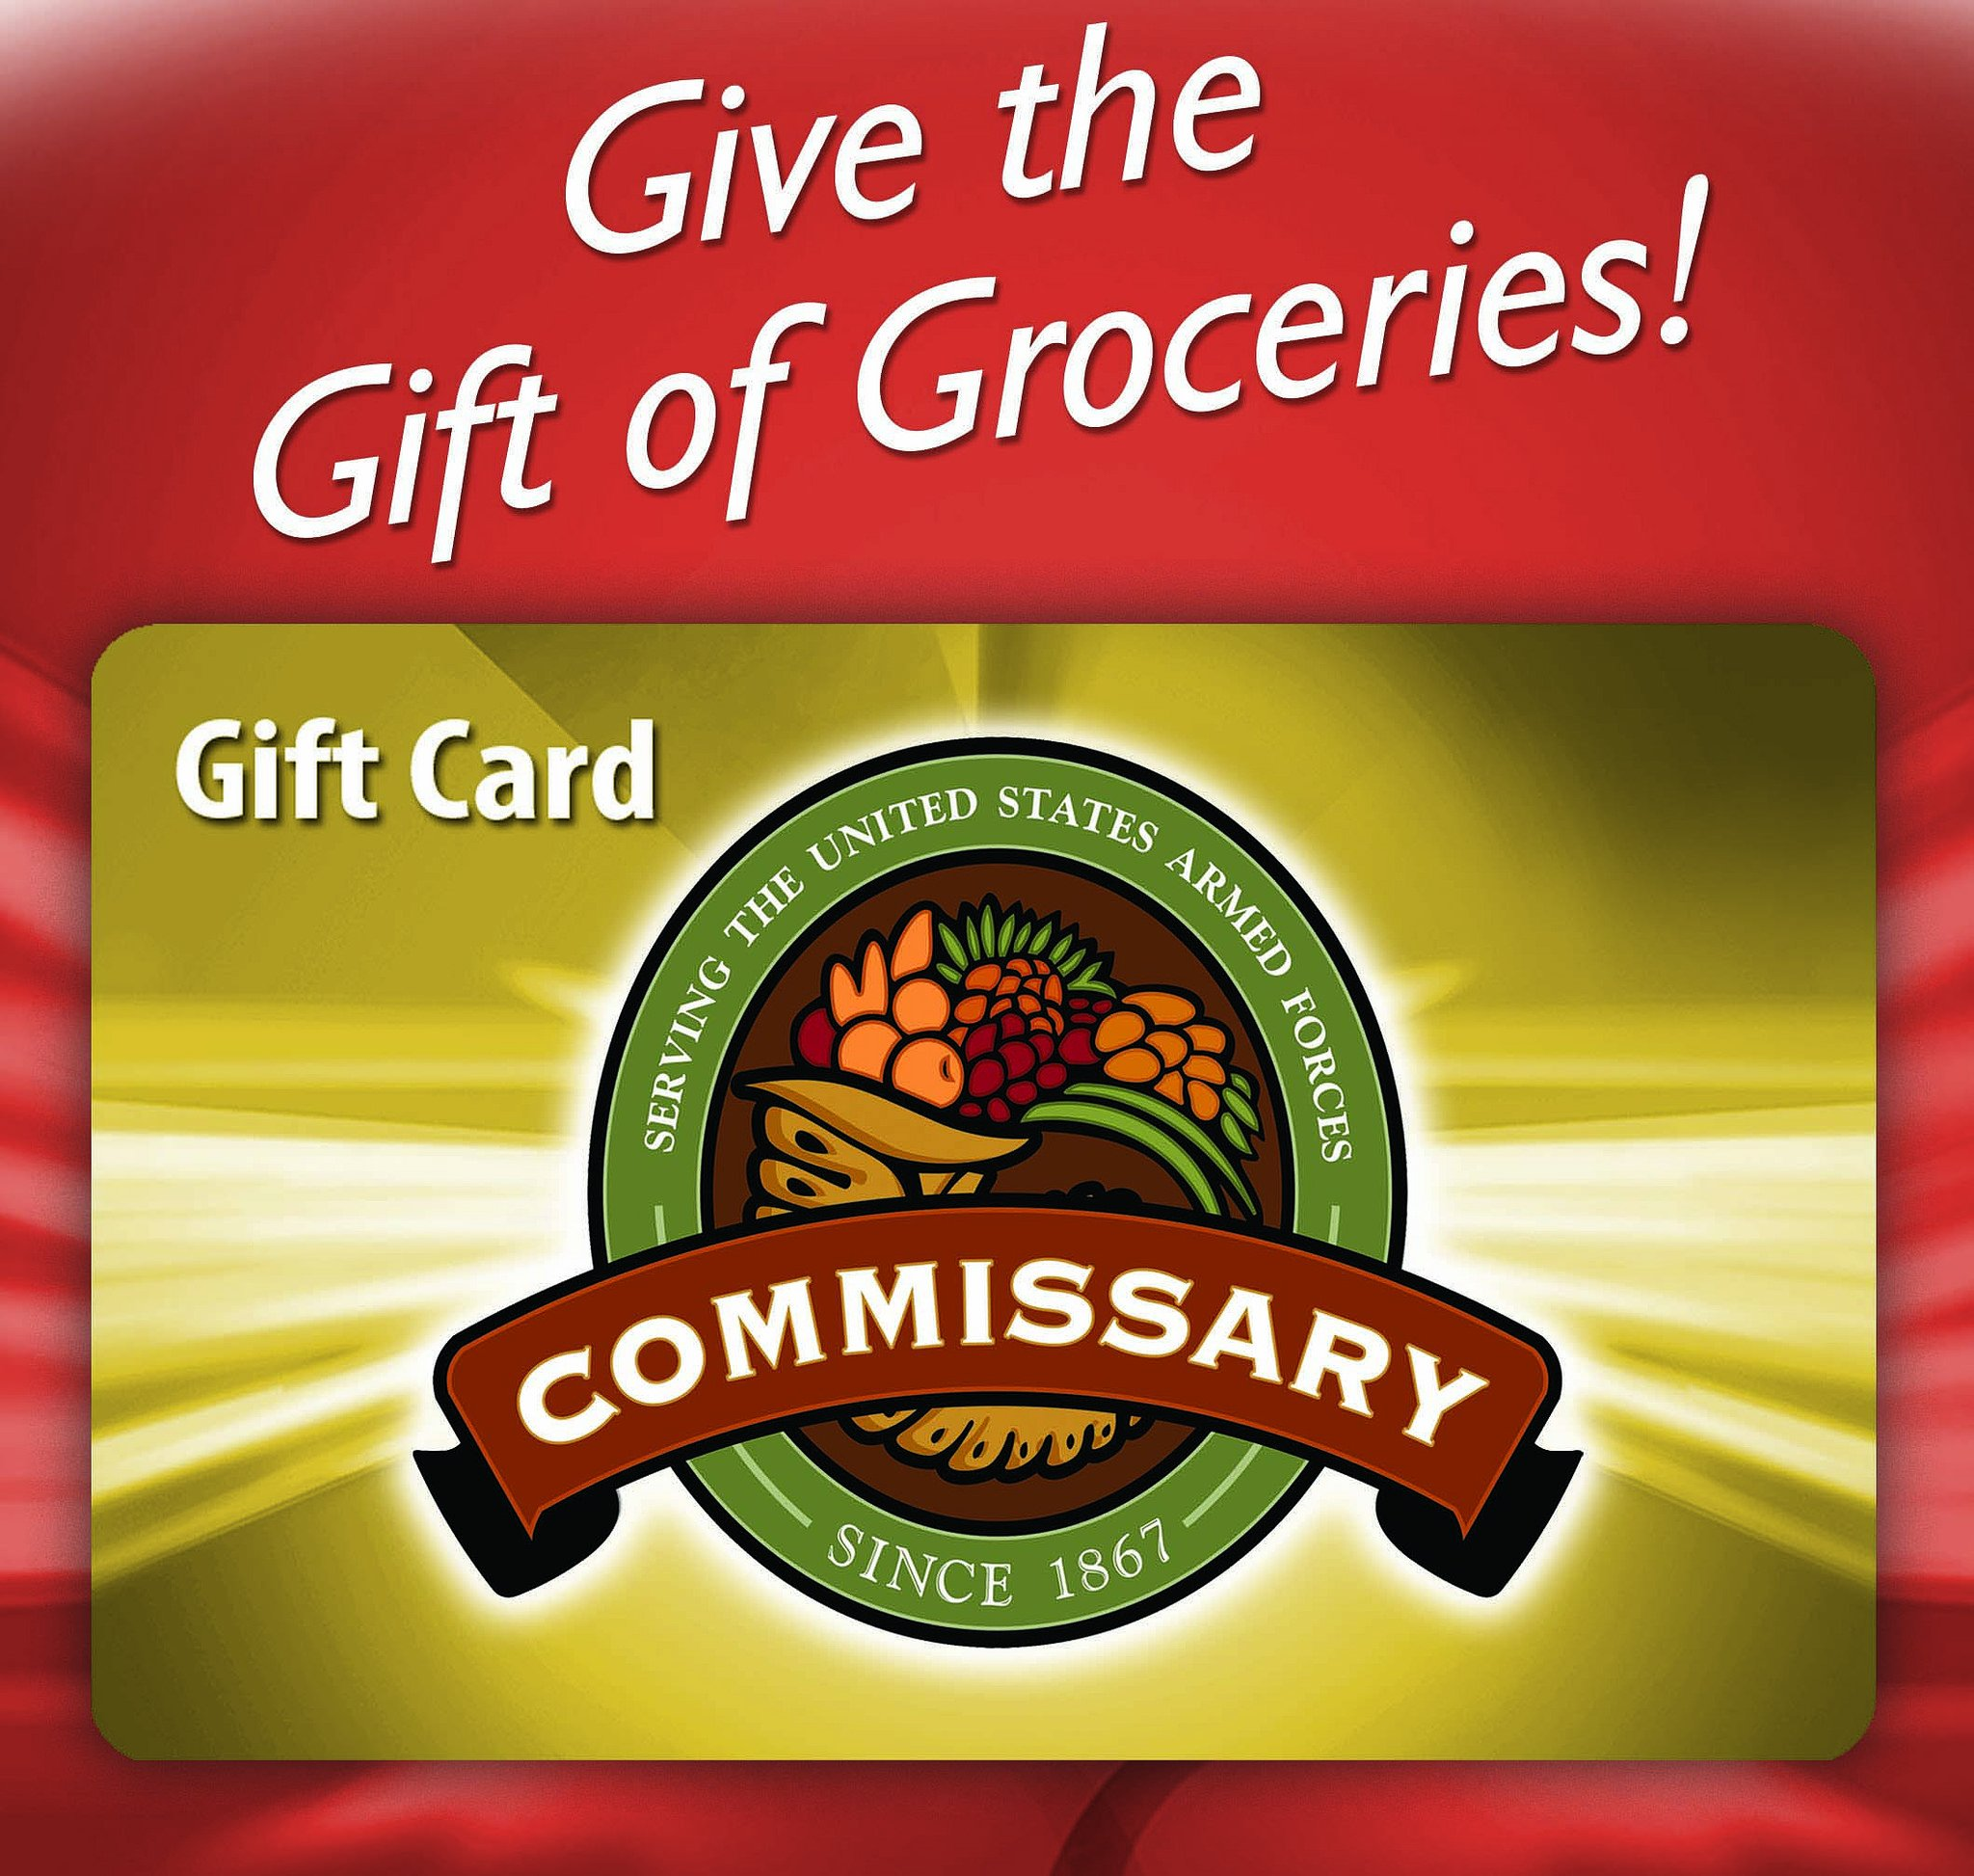 Commissary gift cards available online   StuttgartCitizen.com